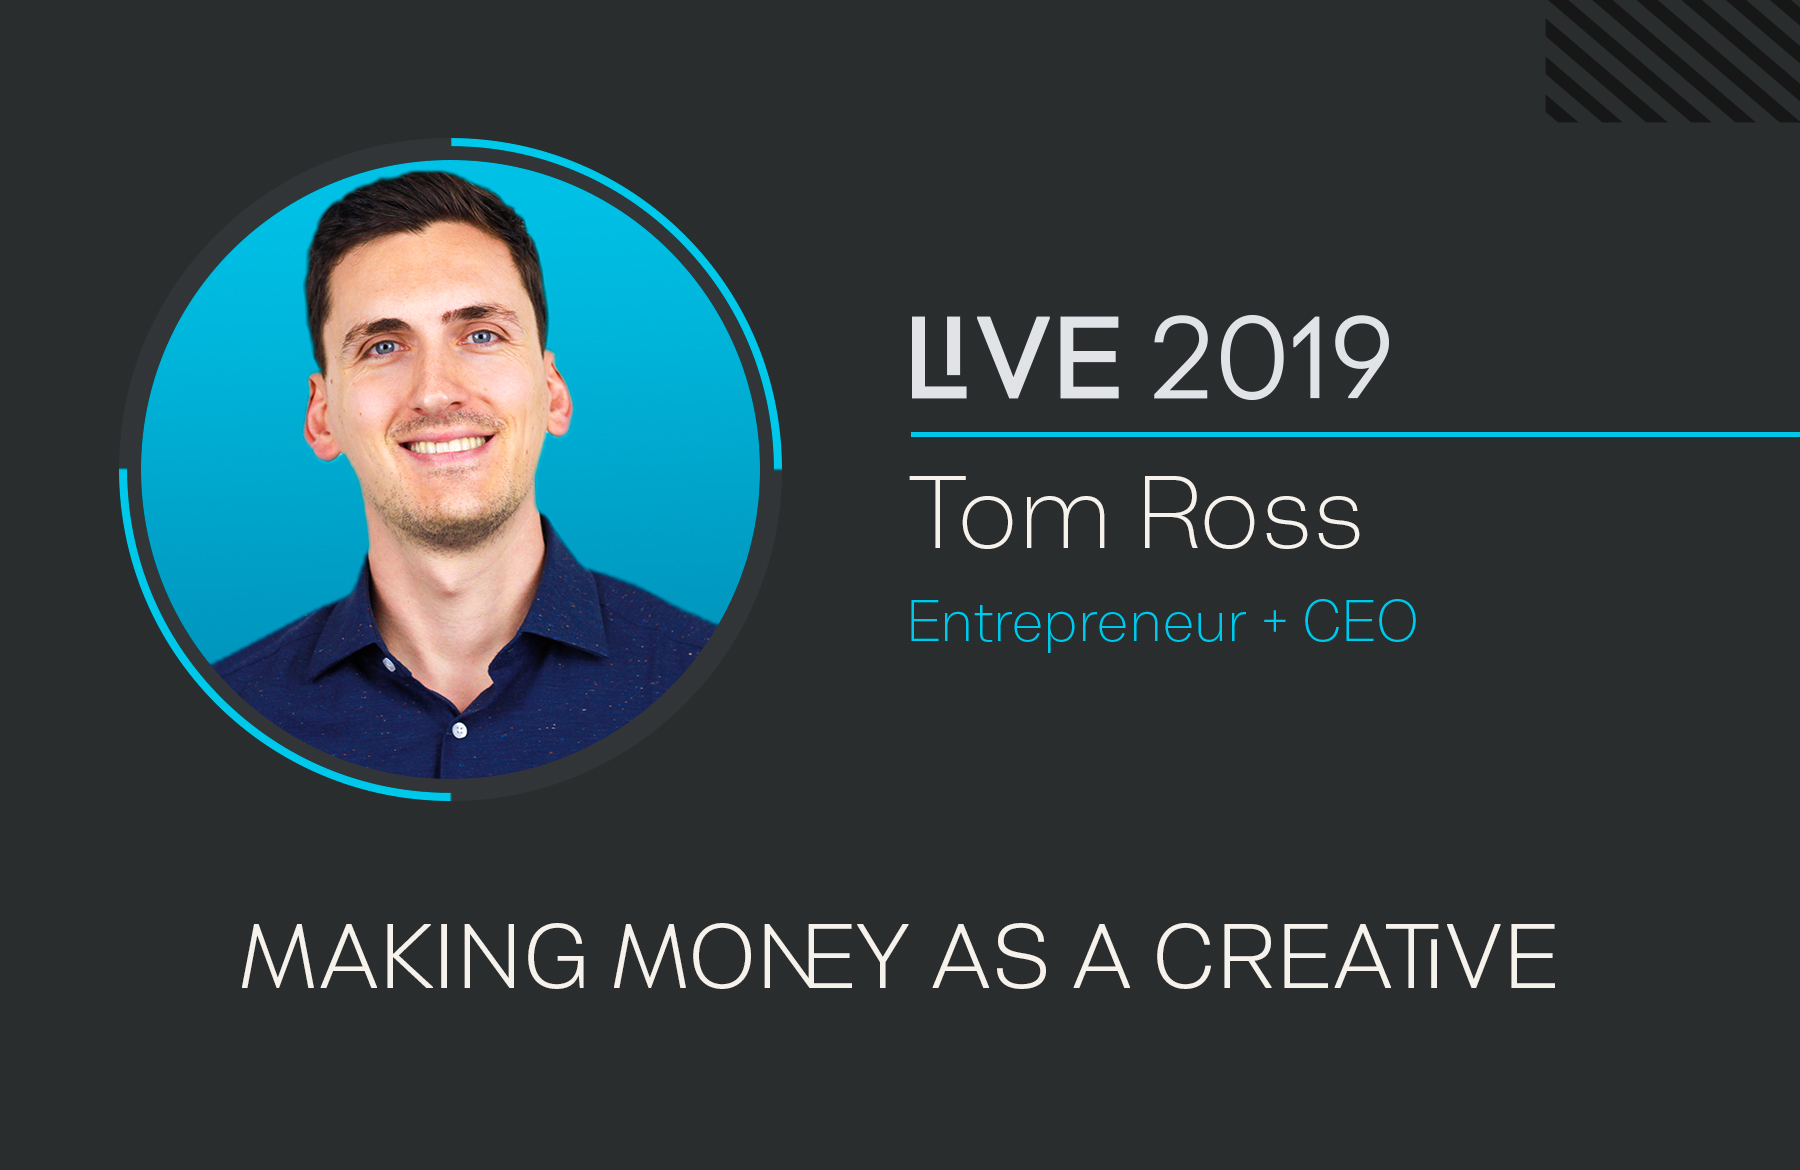 https://www.designcuts.com/wp-content/uploads/2019/10/LearnSection_Tom-Ross.jpg